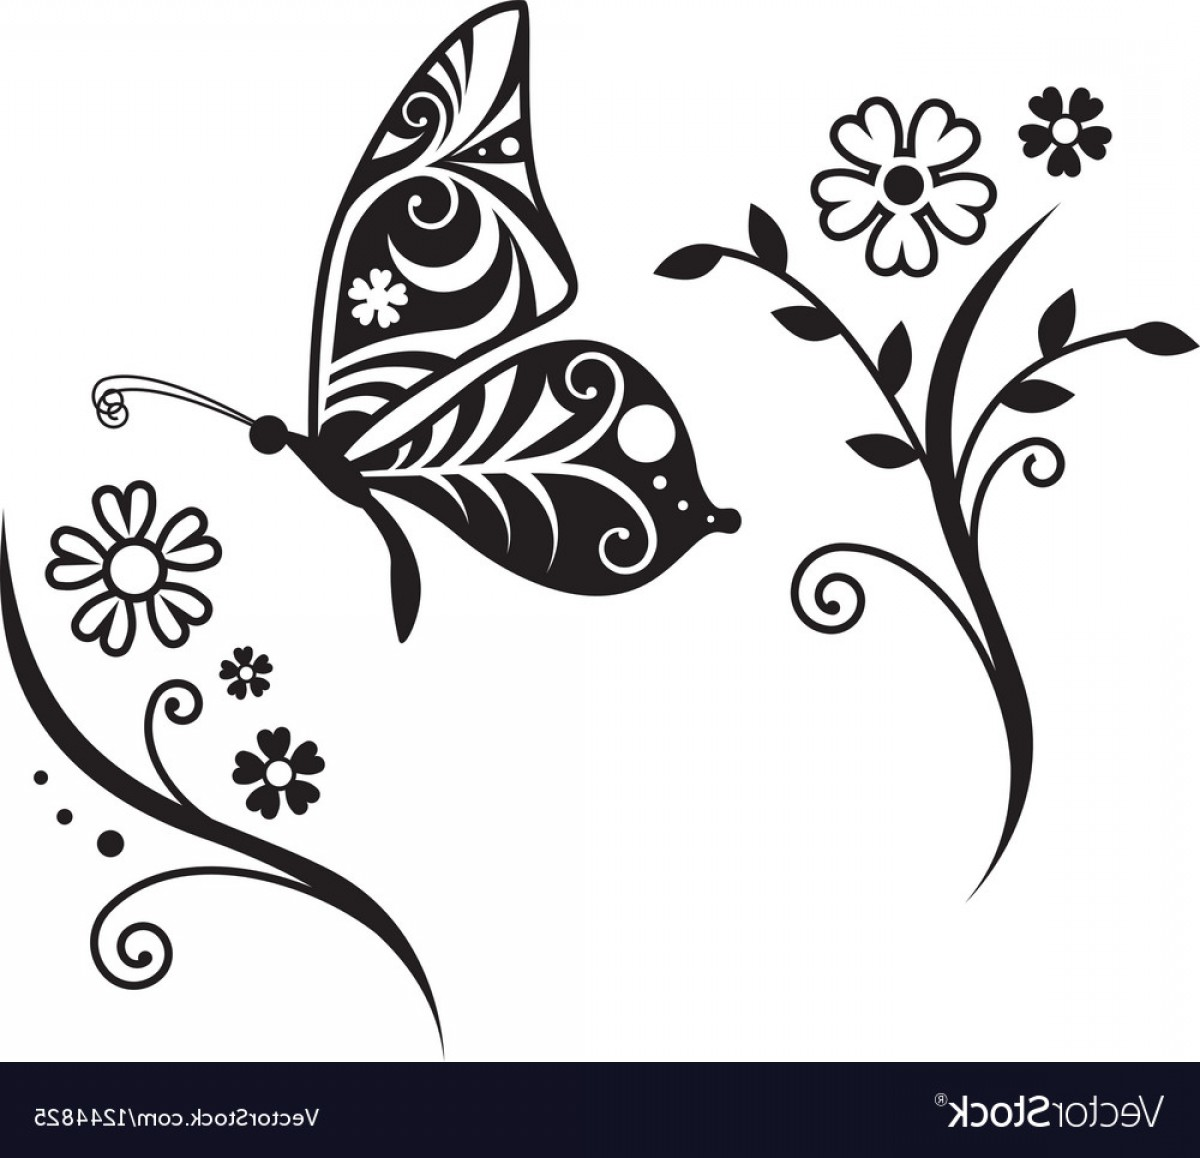 Butter Fly And Flower Vector Black And White: Inwrought Butterfly Silhouette And Flower Vector